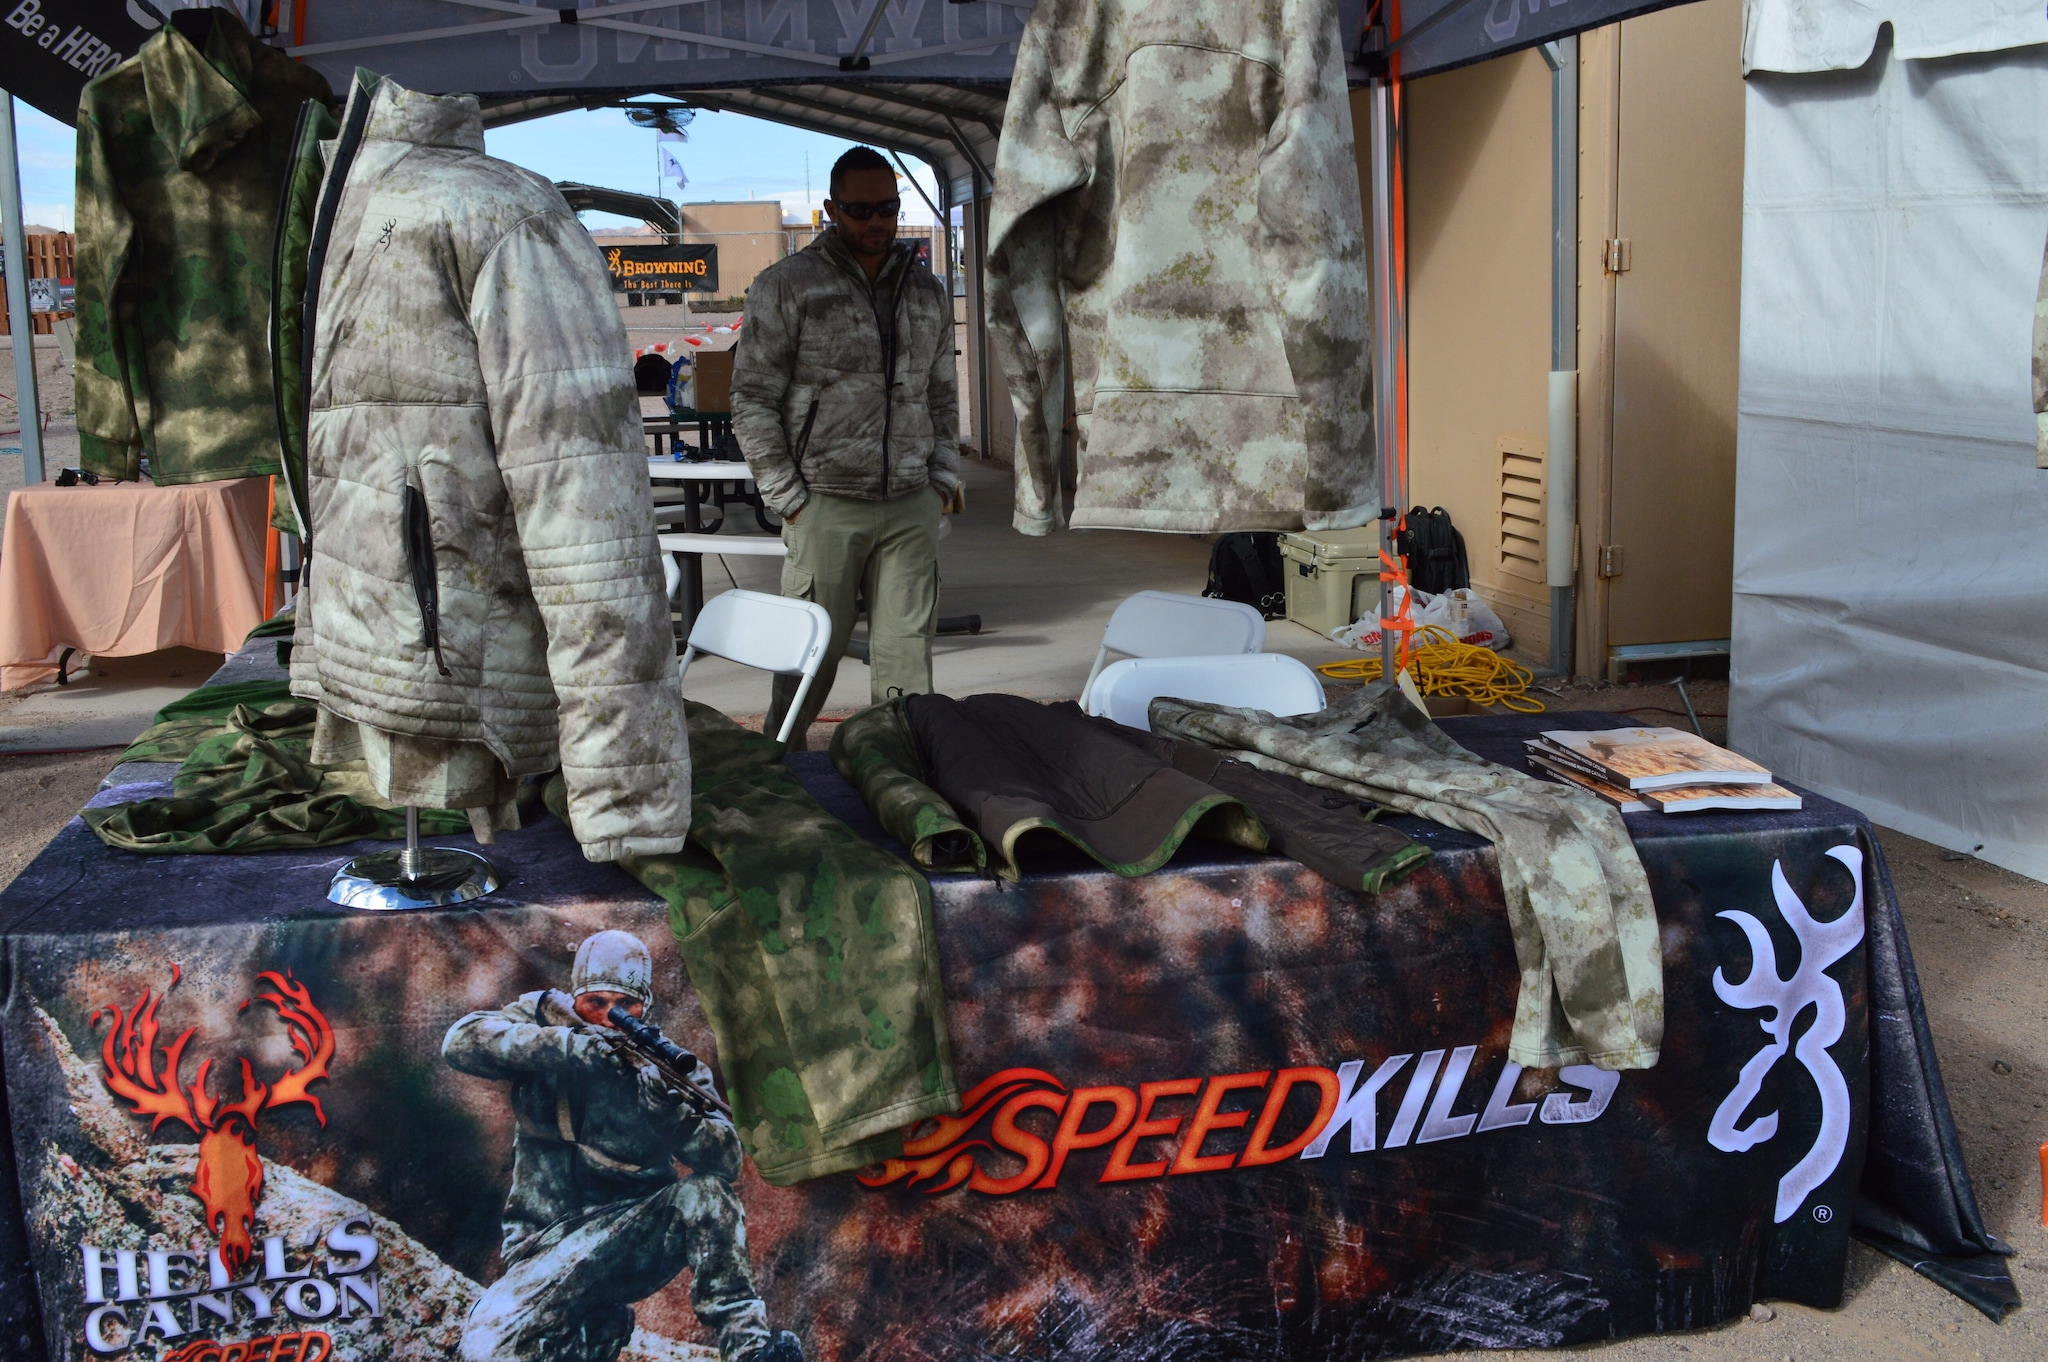 Browning shows off Hell's Canyon Speed line of hunting gear at Industry Day on the Range in Boulder City, NV. (Photo: Kristin Alberts)